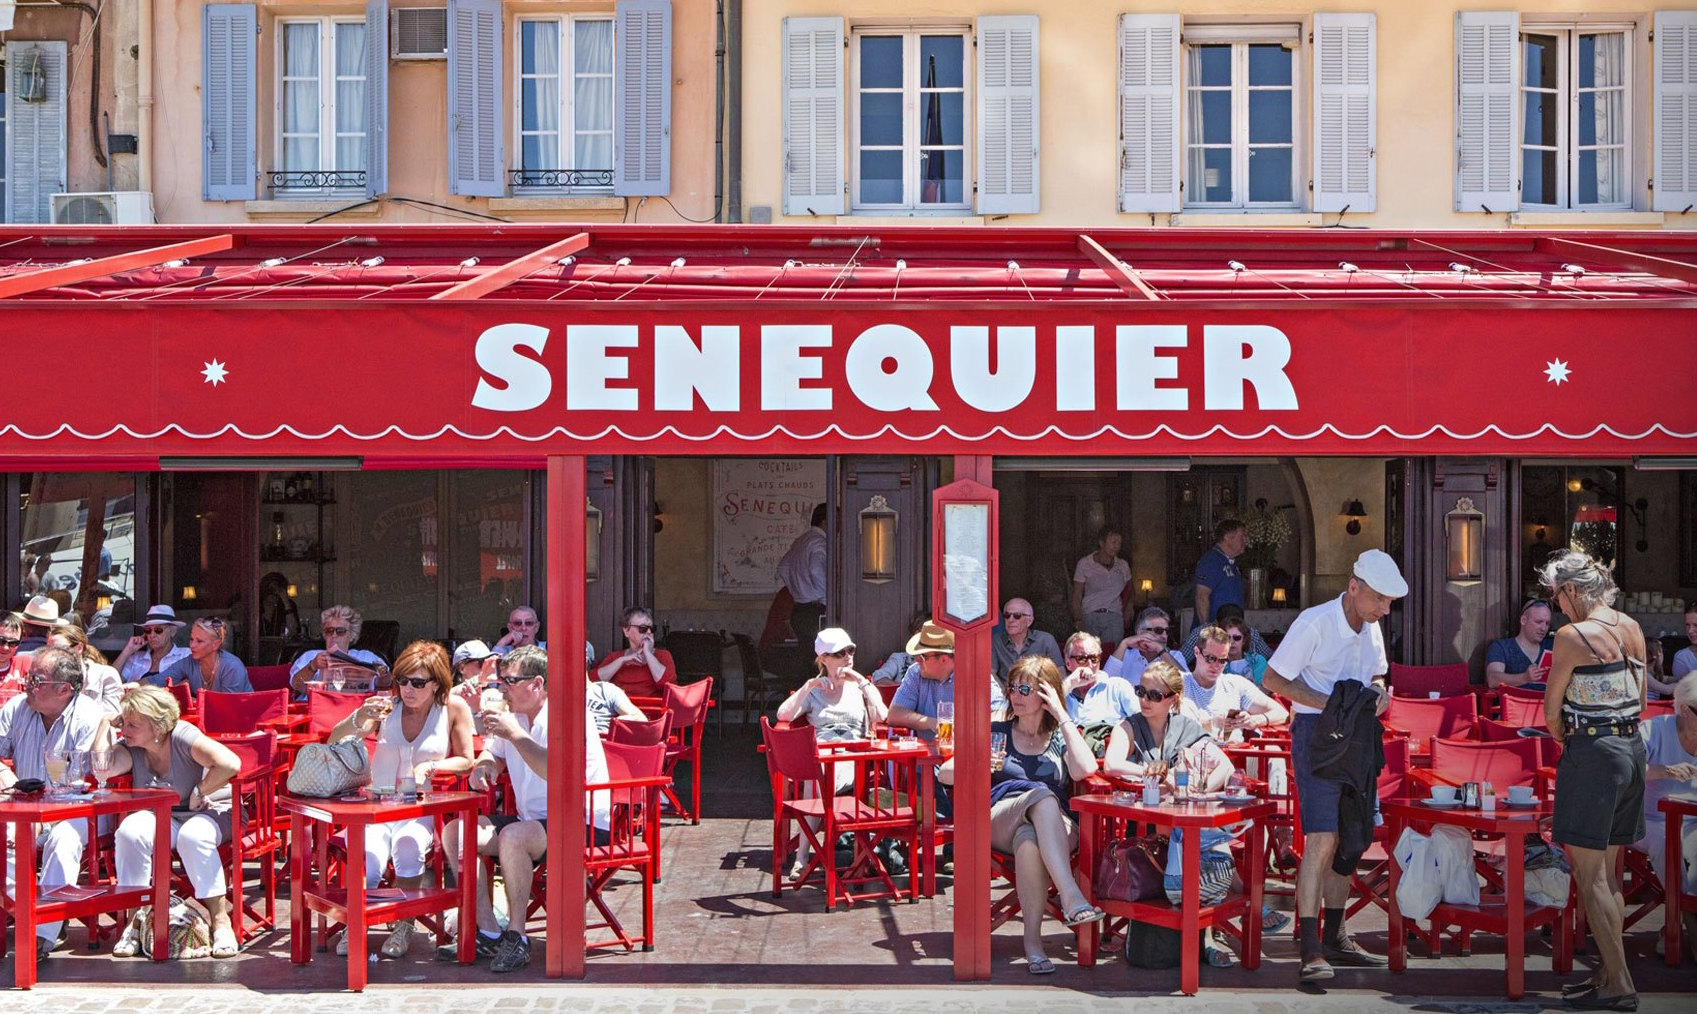 Senequier  I worked in the bakery here one summer and it truly does make one of the best versions of the Tarte Tropezienne around. You can sit in the front and people watch in the afternoon. If you're buying pastries then I suggest going to the old school bakery round the back. The nougat is also pretty famous and I have tried to recreate a similar recipe based on this place in my cookbook.  Quai Jean Jaurès, 83990 St Tropez, France +33 4 94 97 20 20